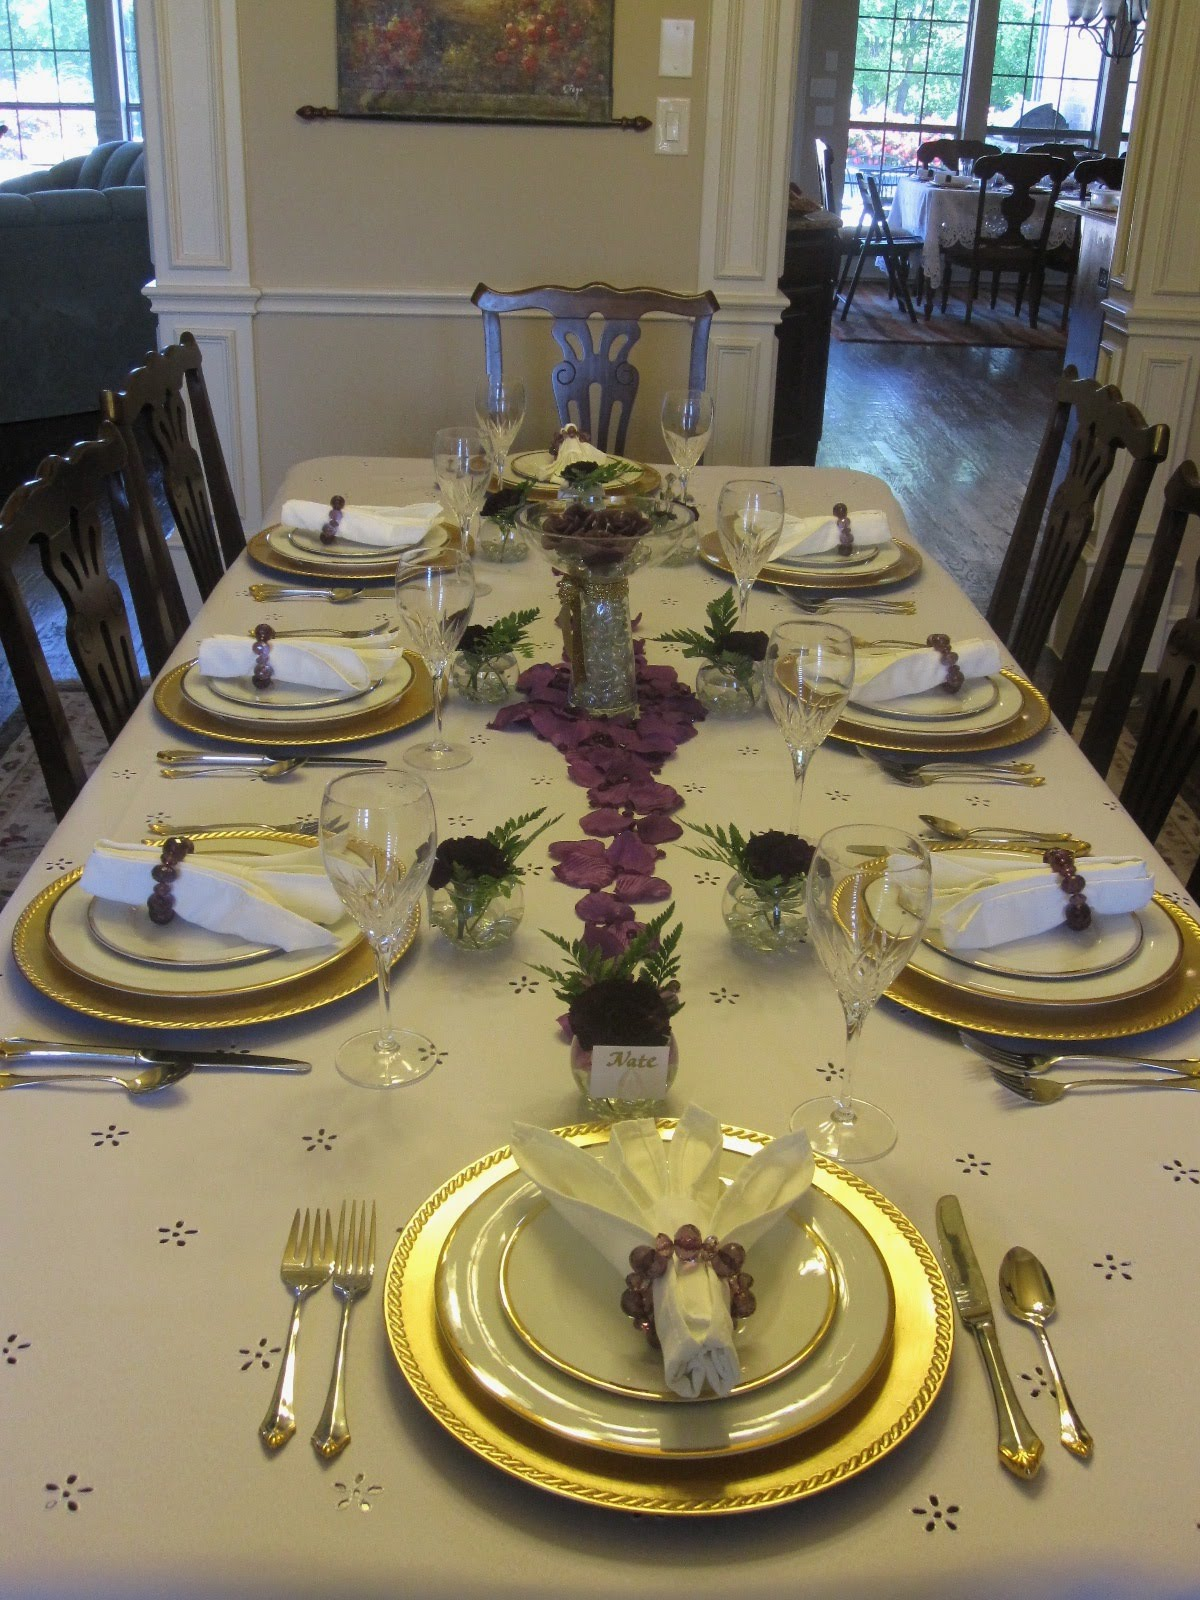 Creative hospitality decorative dinner table setting ideas for Fancy dinner table